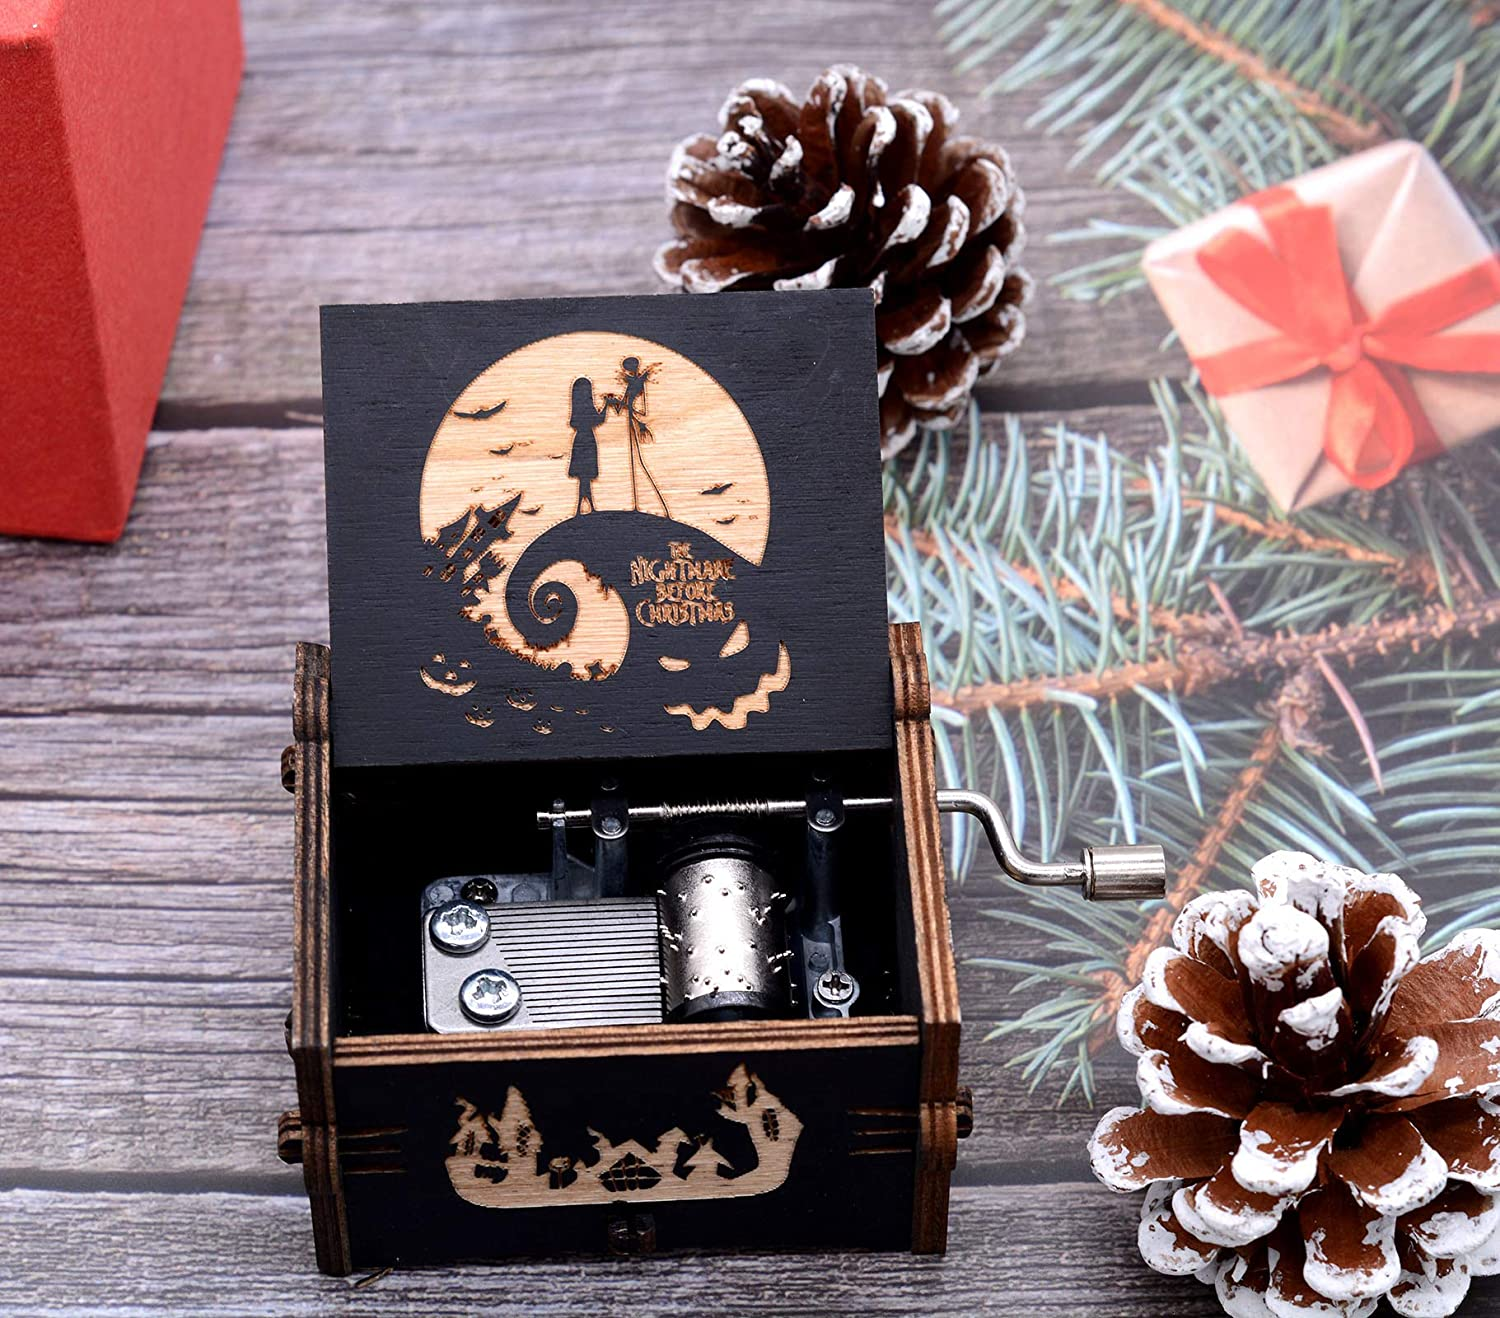 Keast Carillon vintage in legno intagliato The Nightmare Before Christmas a manovella per giocare a melodia Merry Christmas To Daughter From Dad Mom